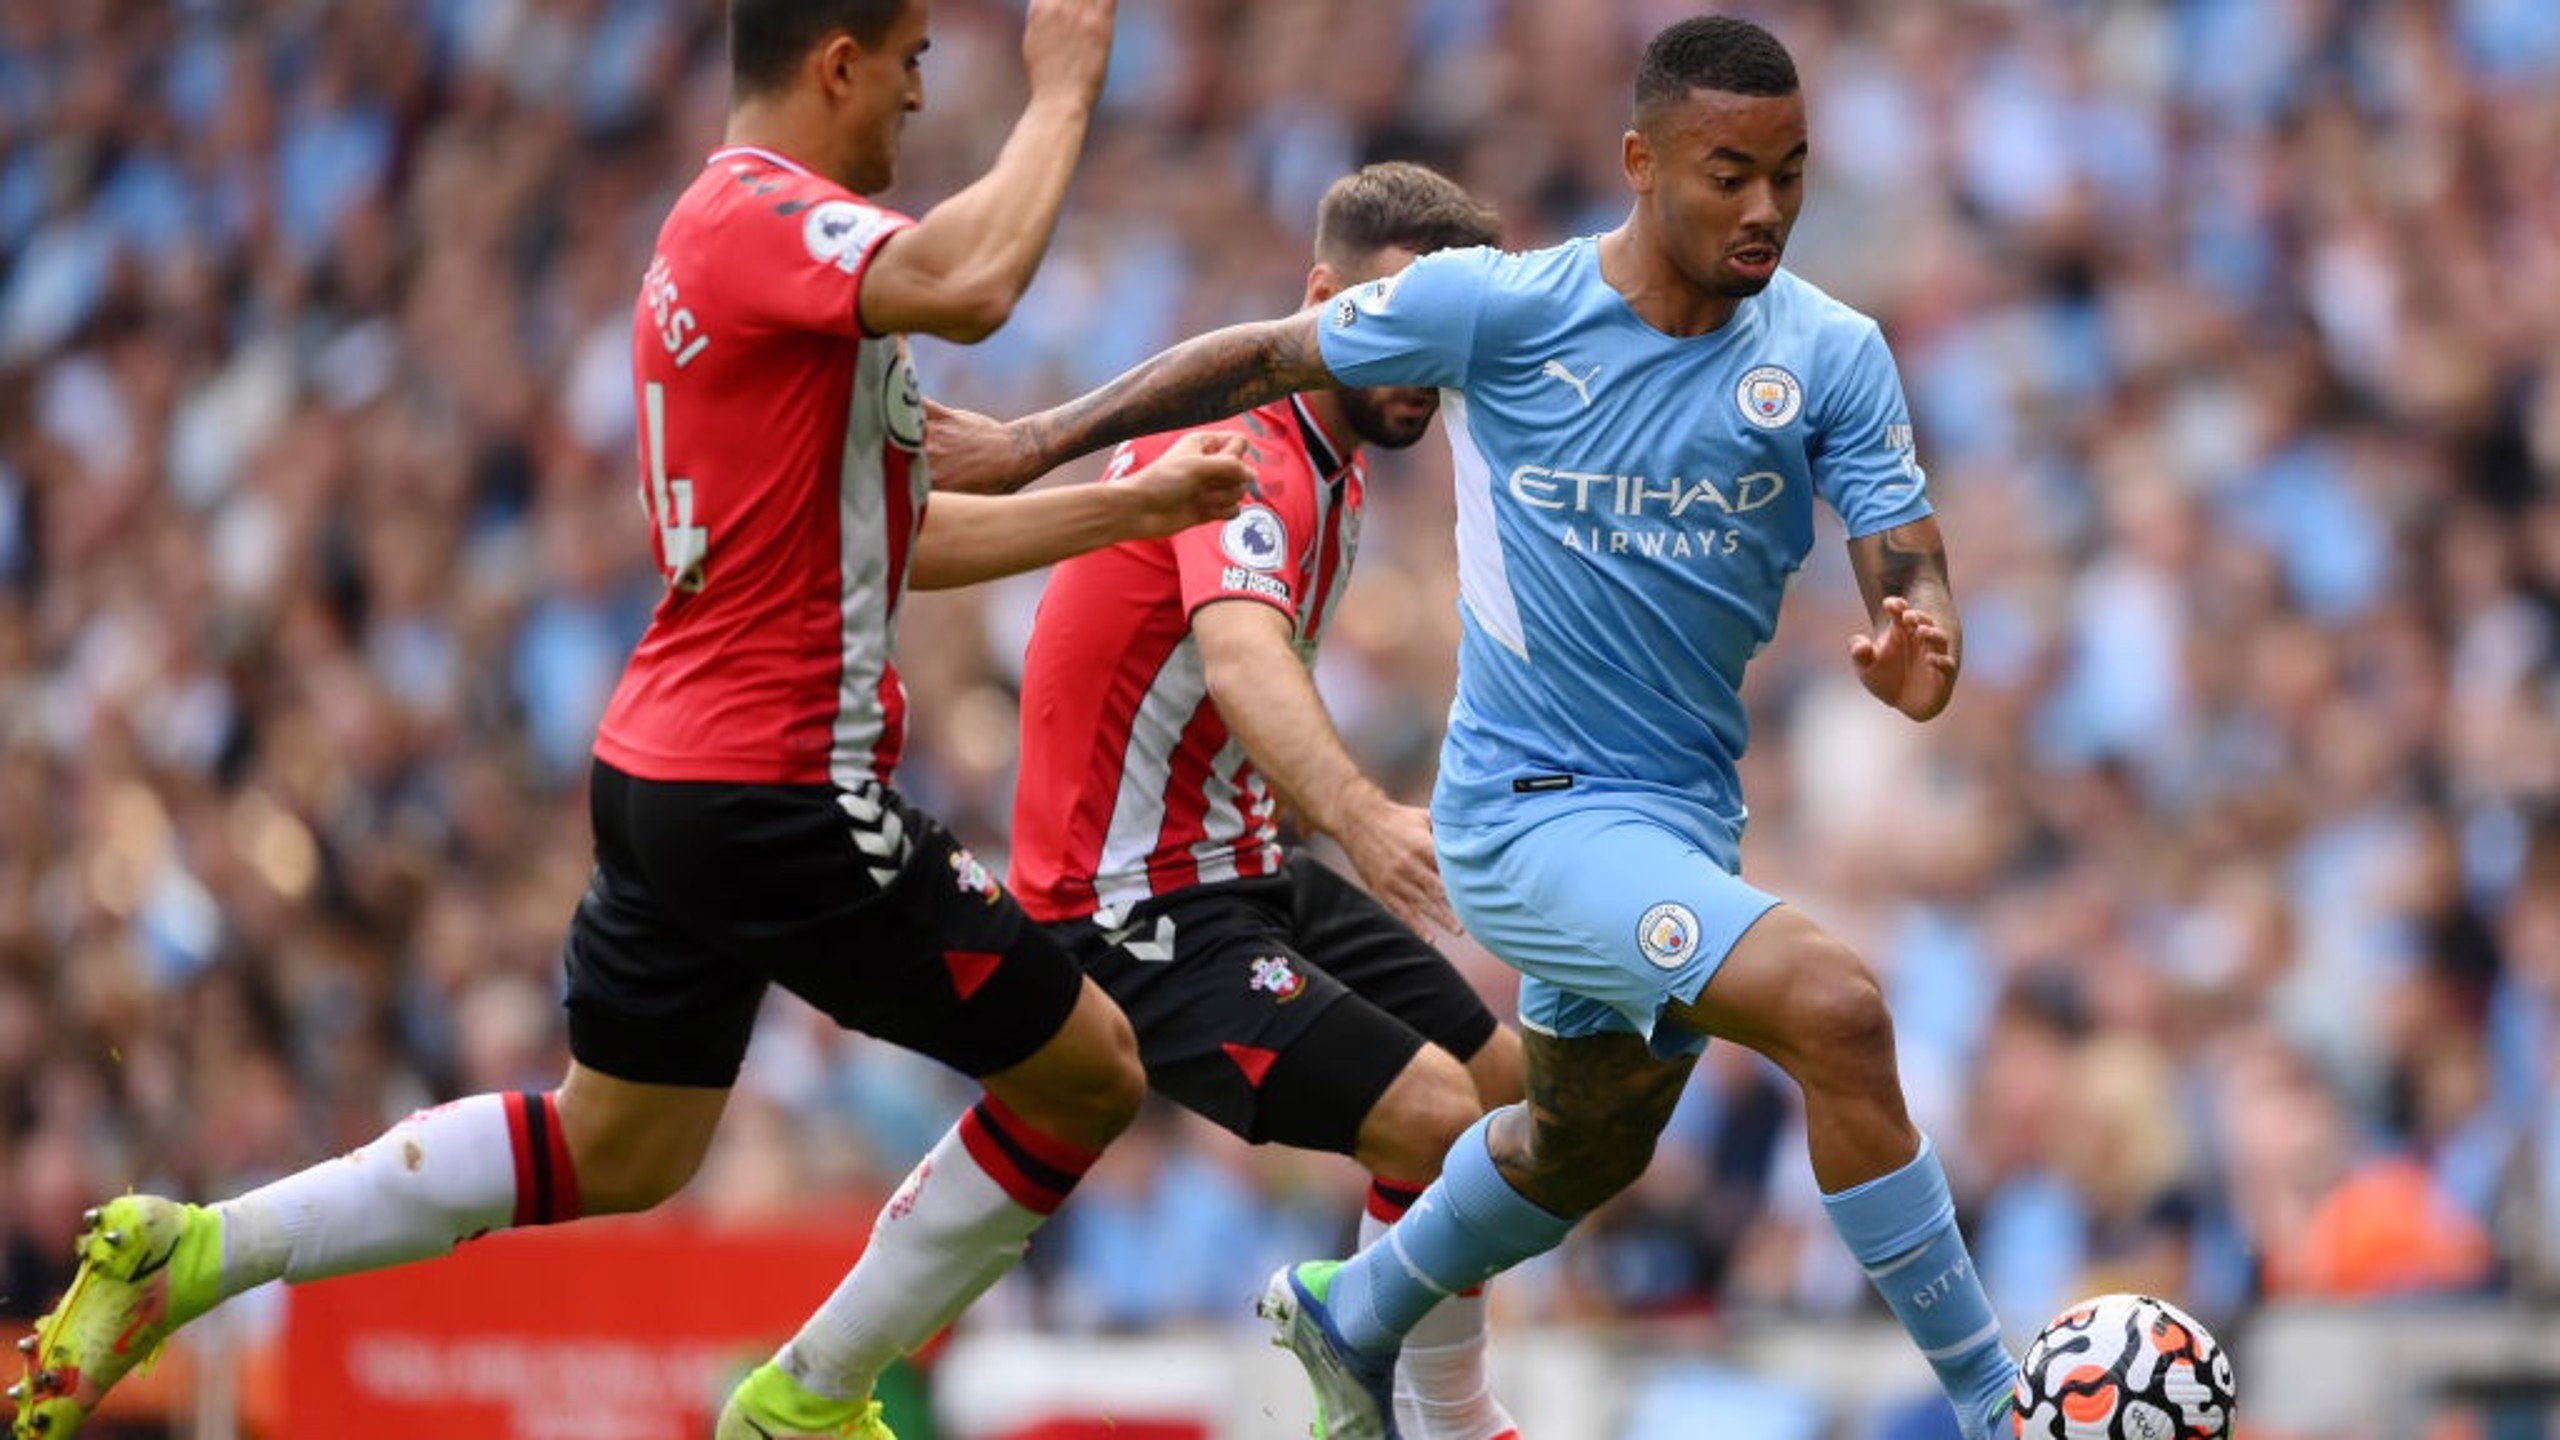 ON THE CHARGE: Jesus gets City forward early on.